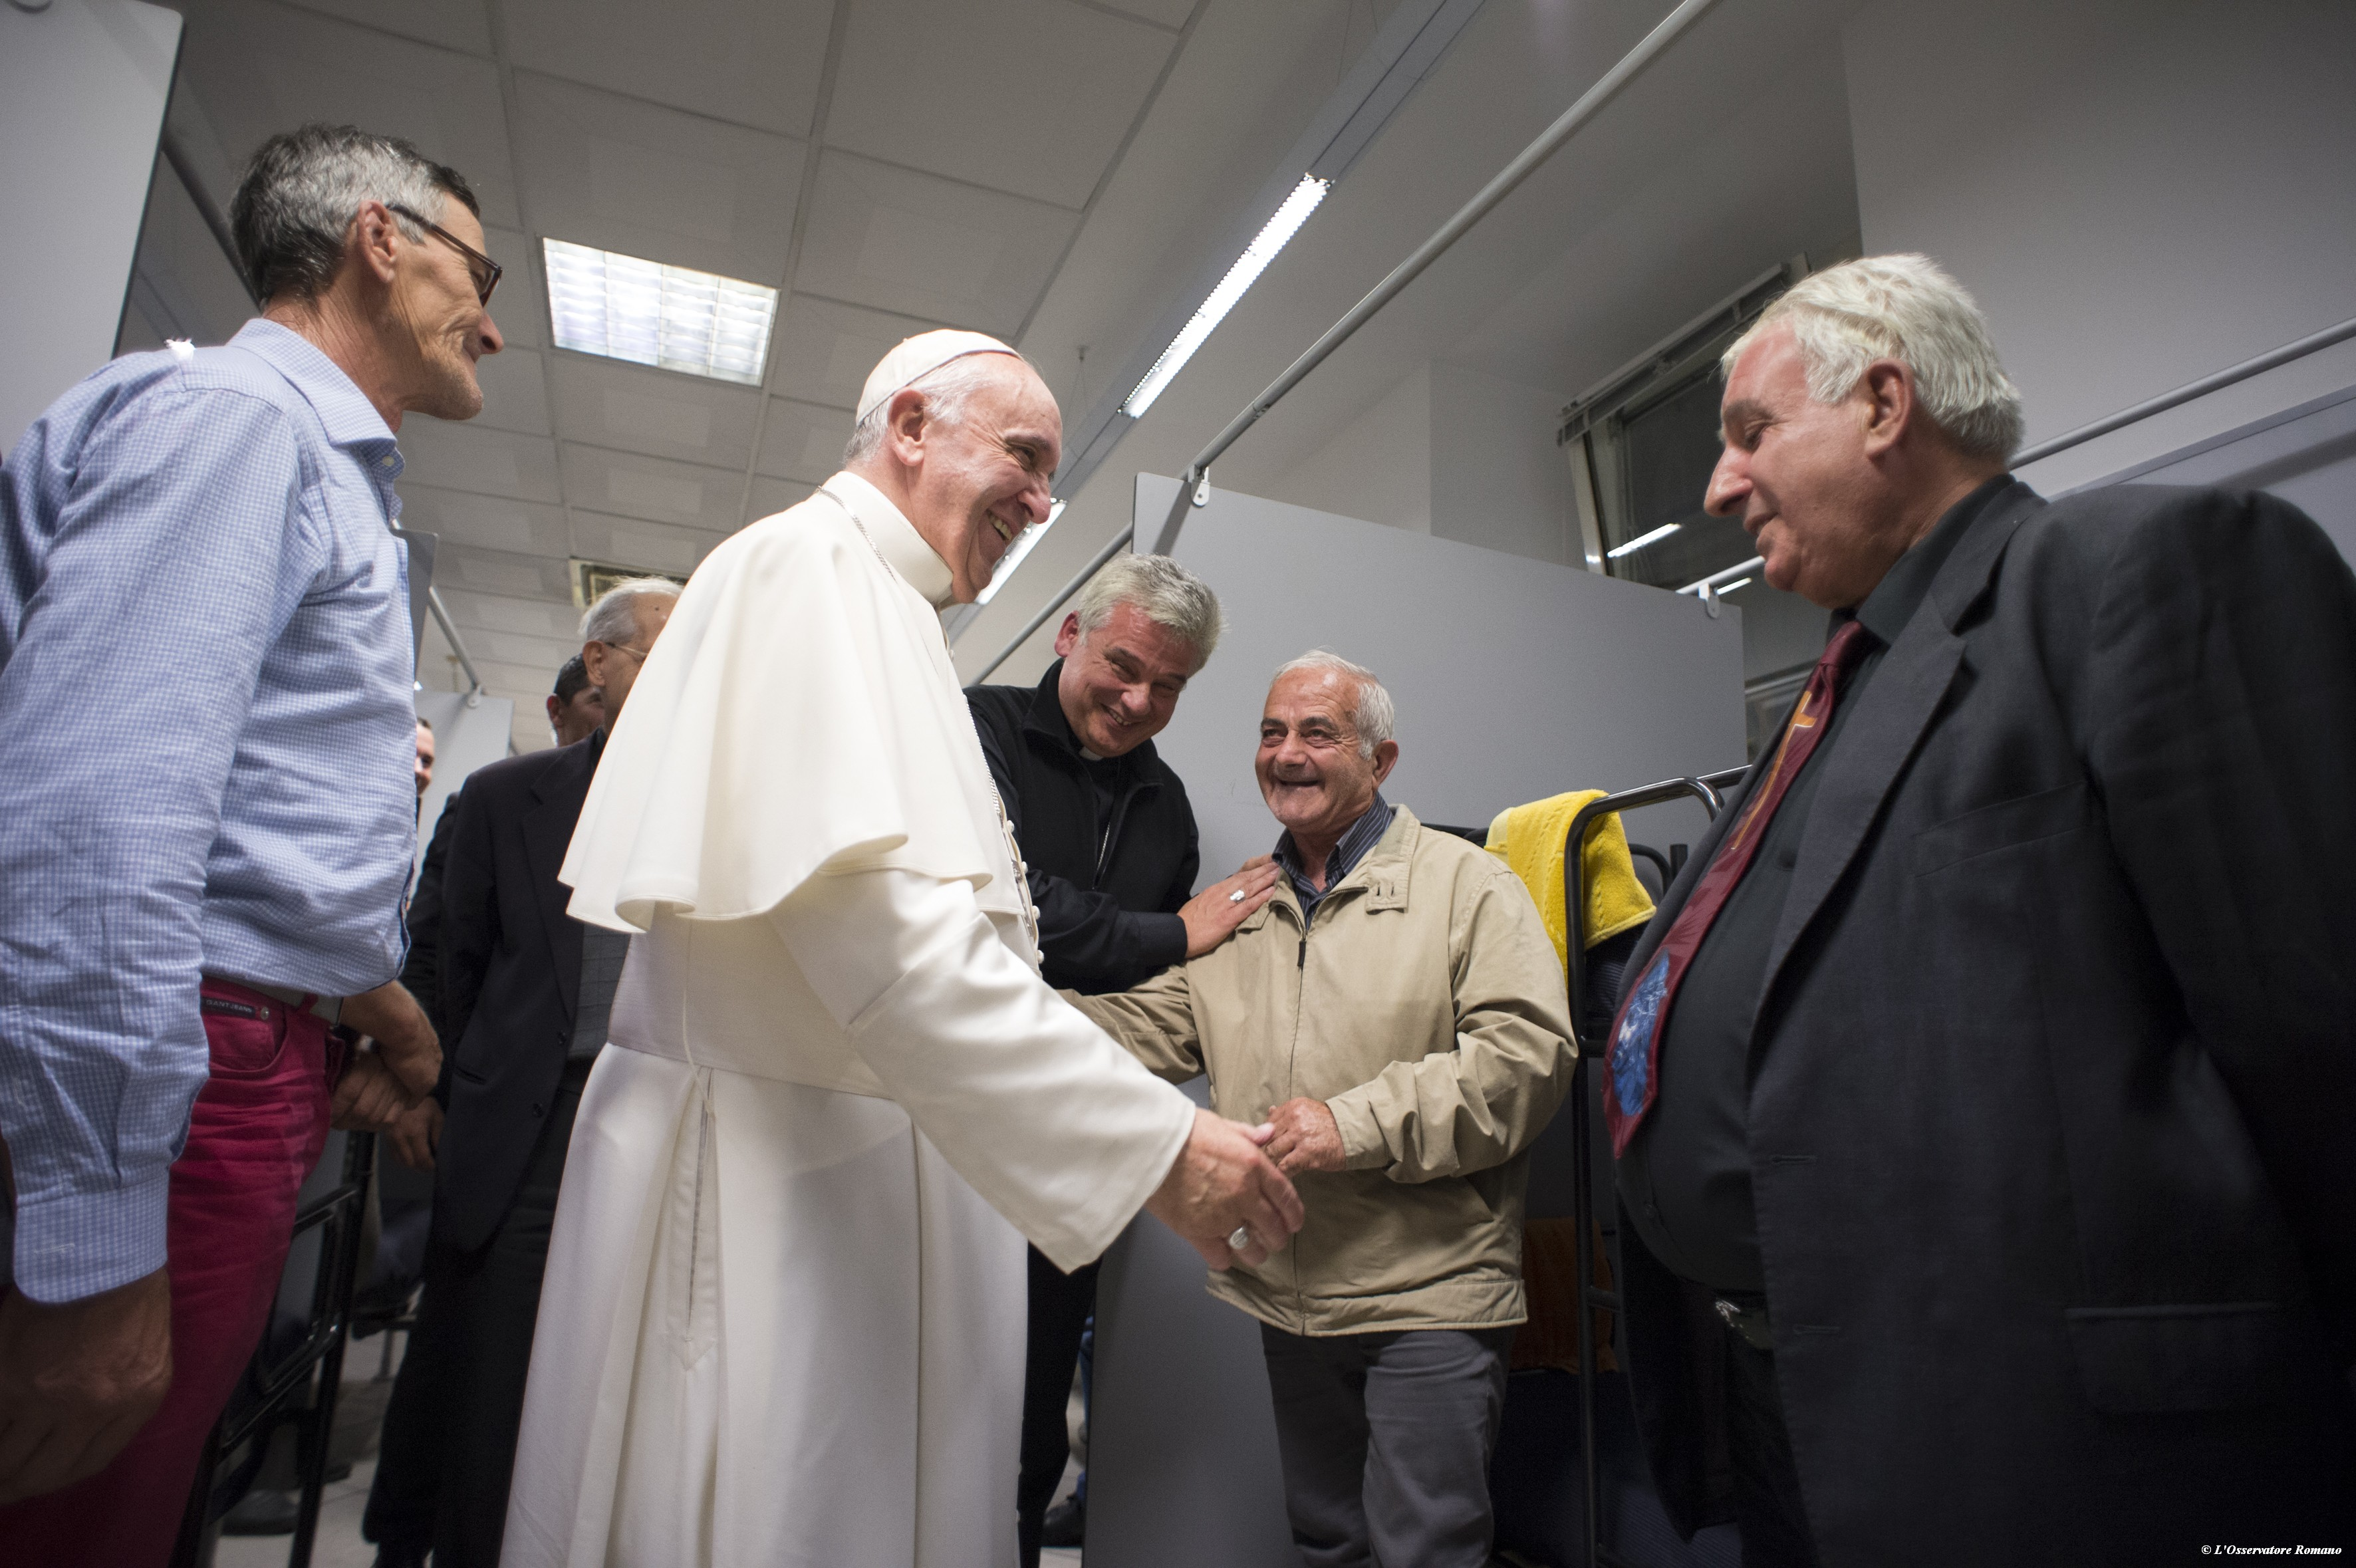 Pope Francis visited the new dormitory for the homeless on Thursday evening